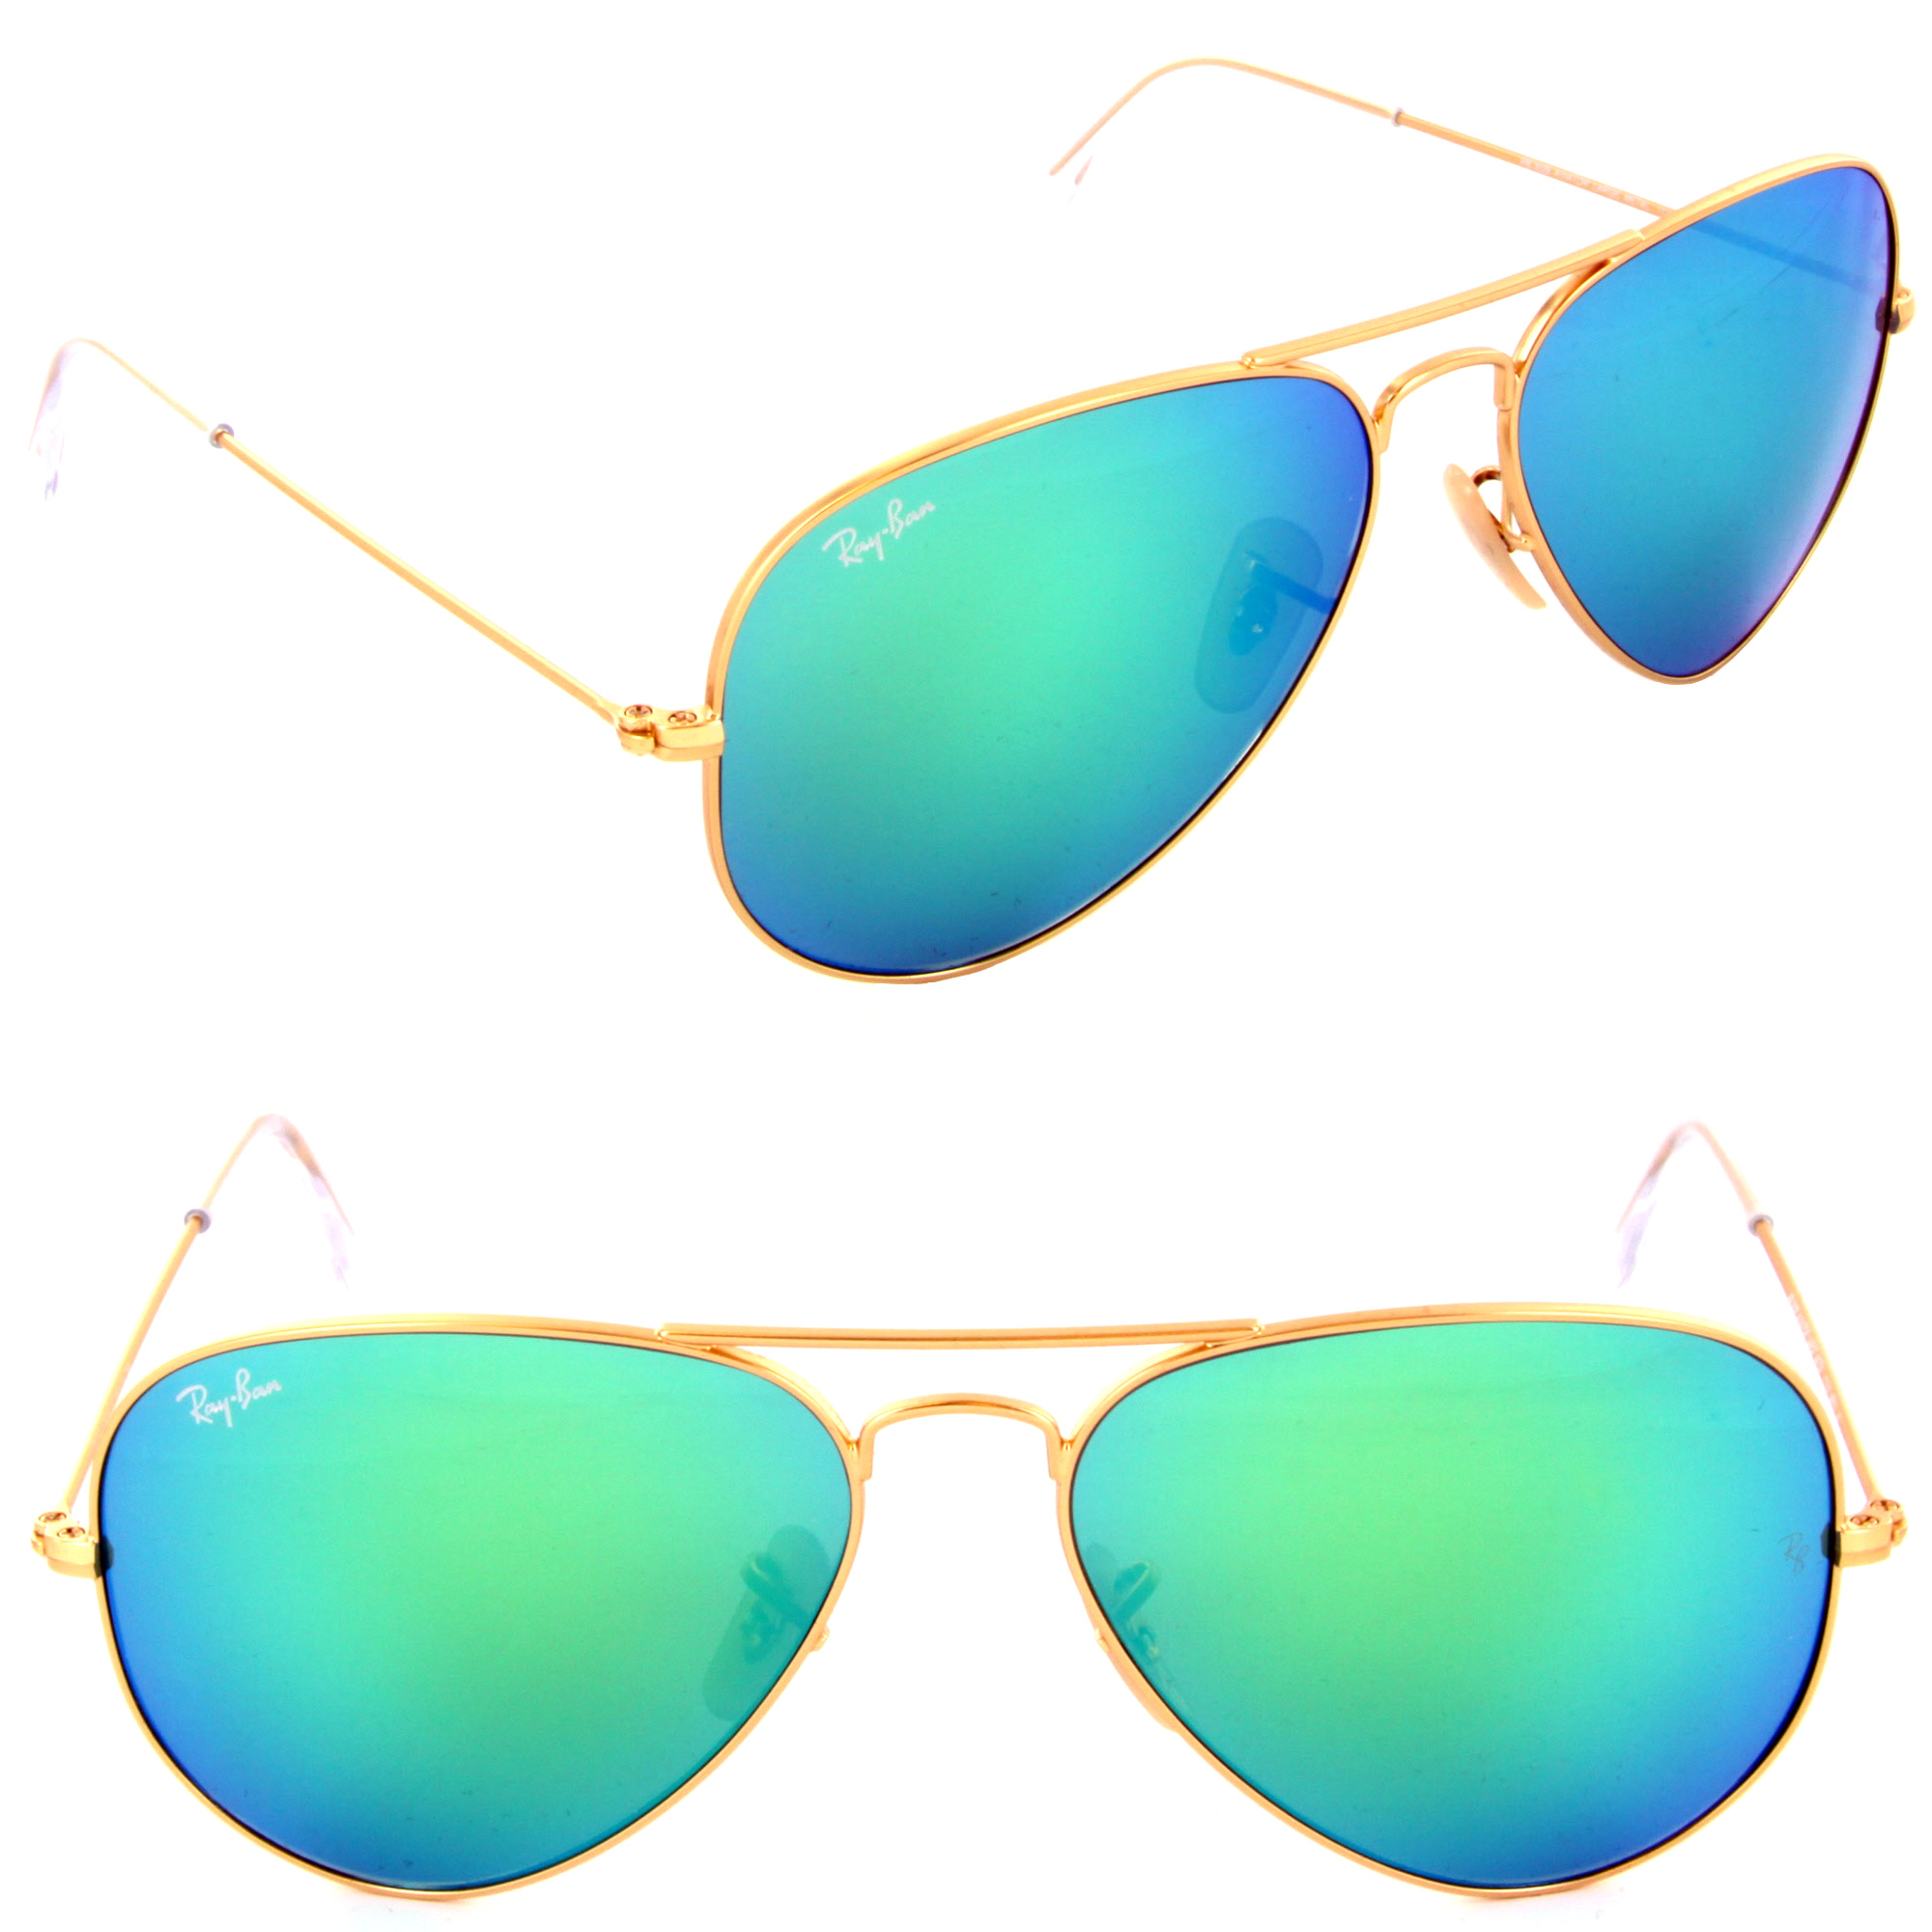 86510075ea6 Contacts1st.com -- Ray-Ban -- RB3025 Aviator